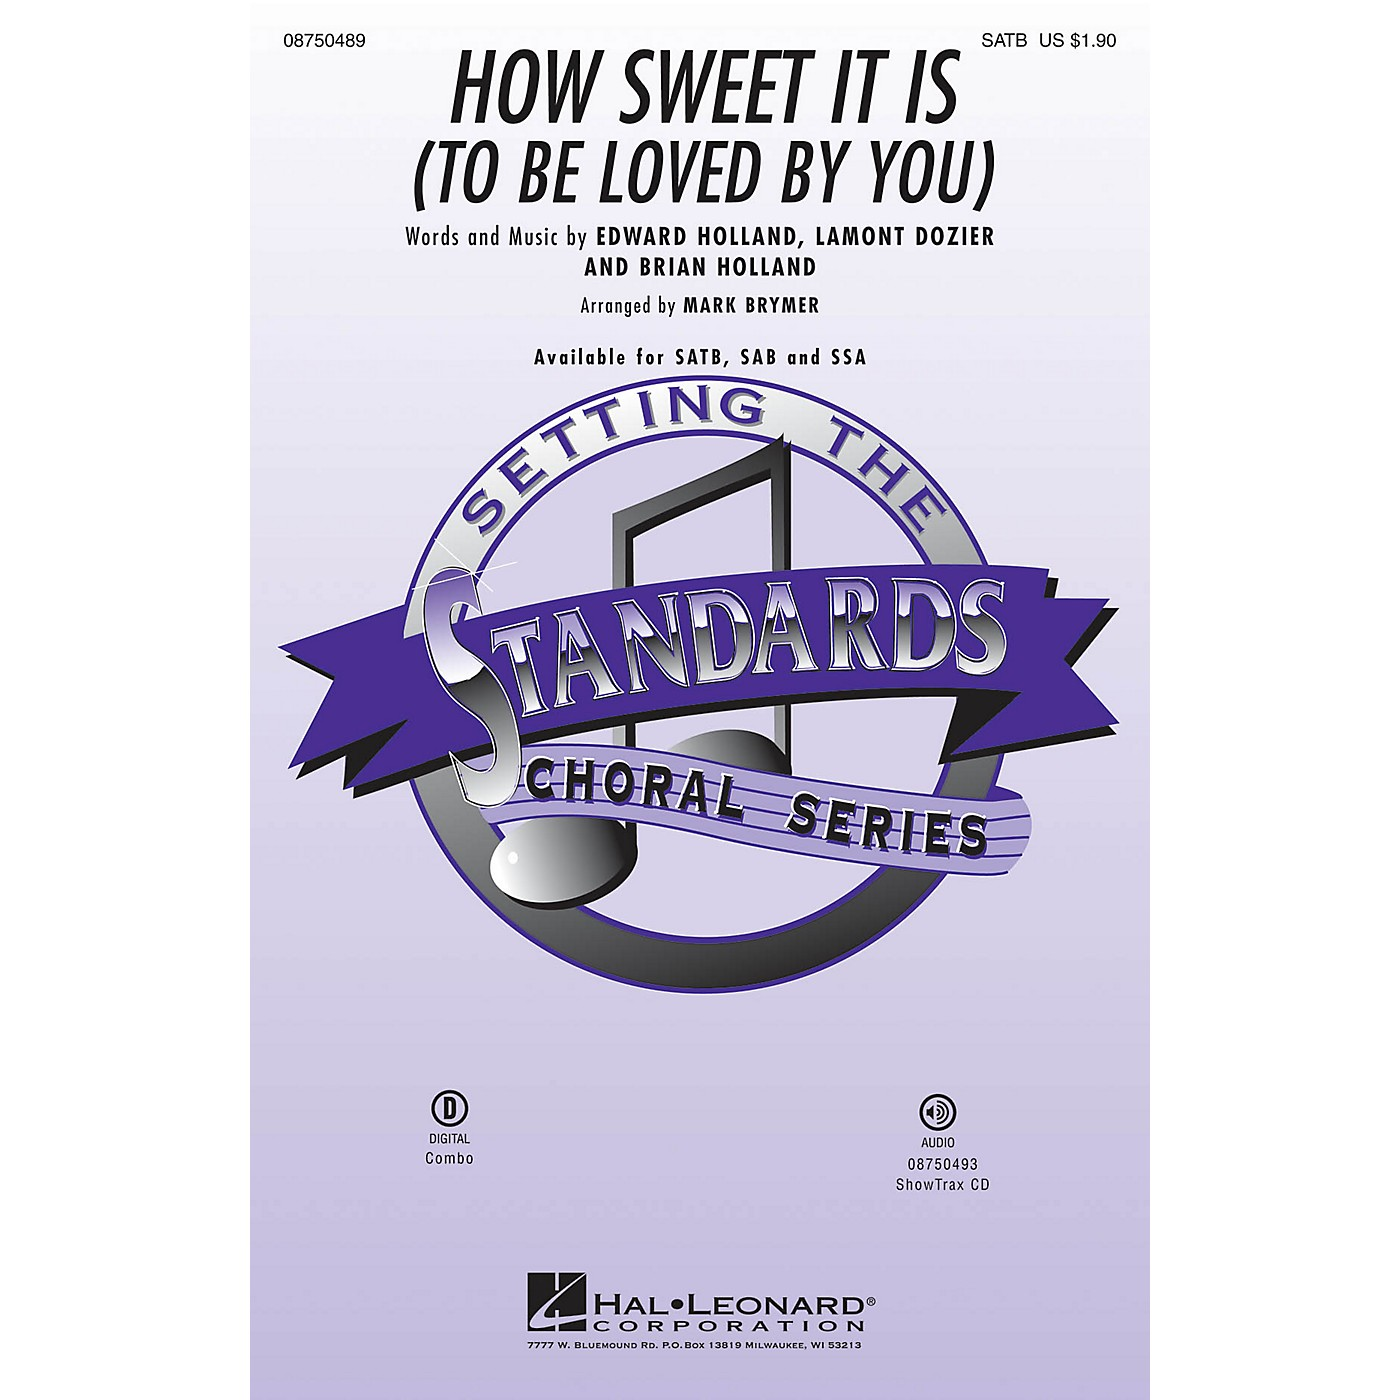 Hal Leonard How Sweet It Is to Be Loved by You SATB arranged by Mark Brymer thumbnail